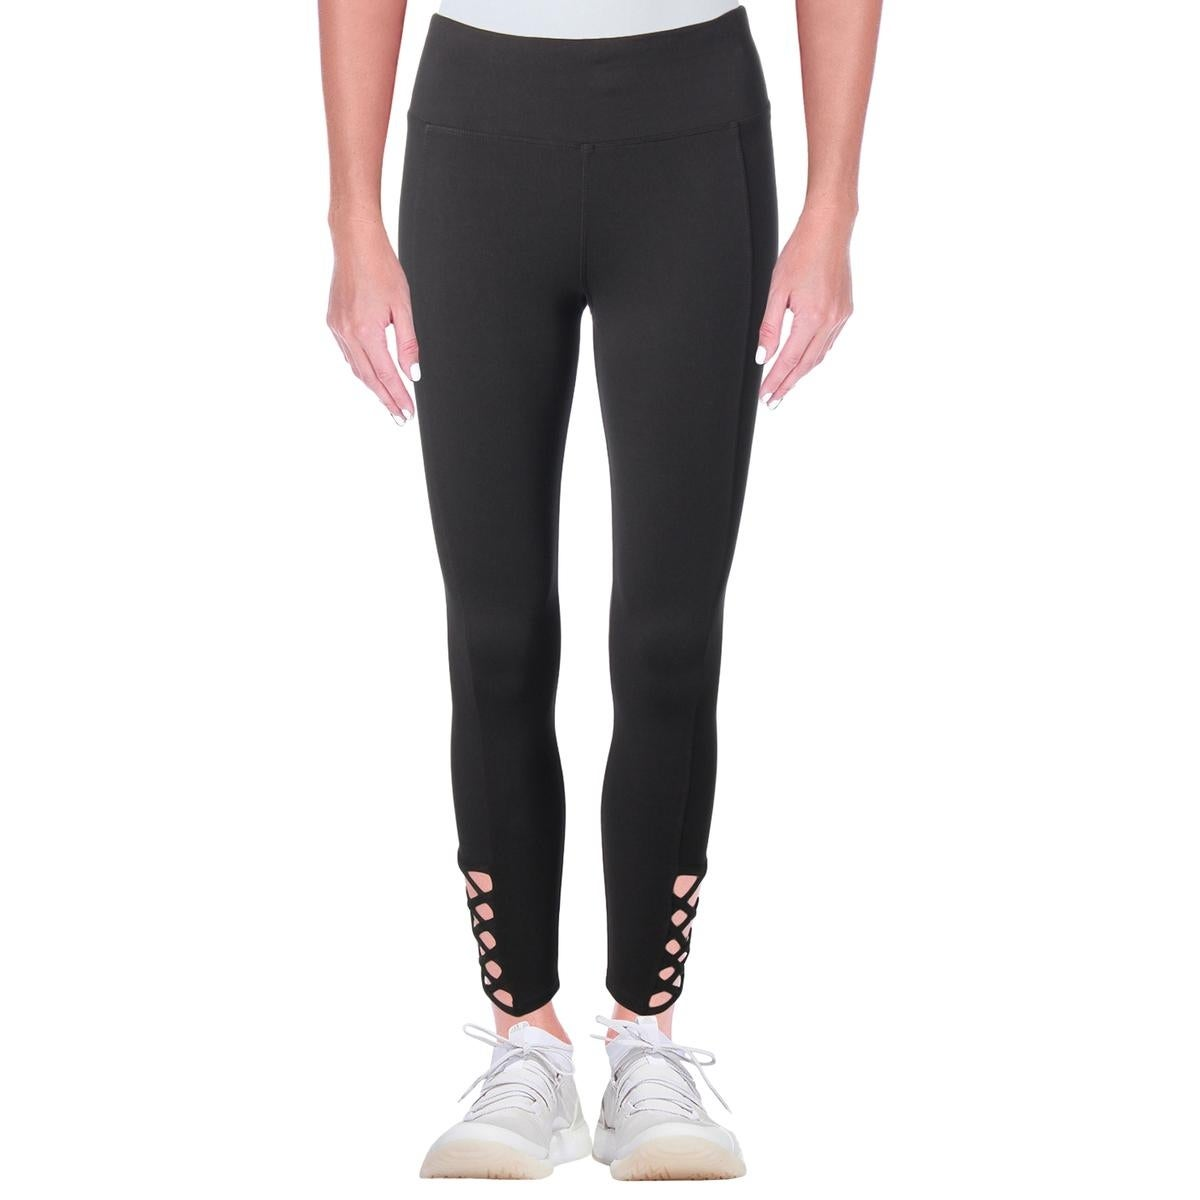 37b1628f790b79 Shop Betsey Johnson Performance Womens Athletic Leggings Yoga ...